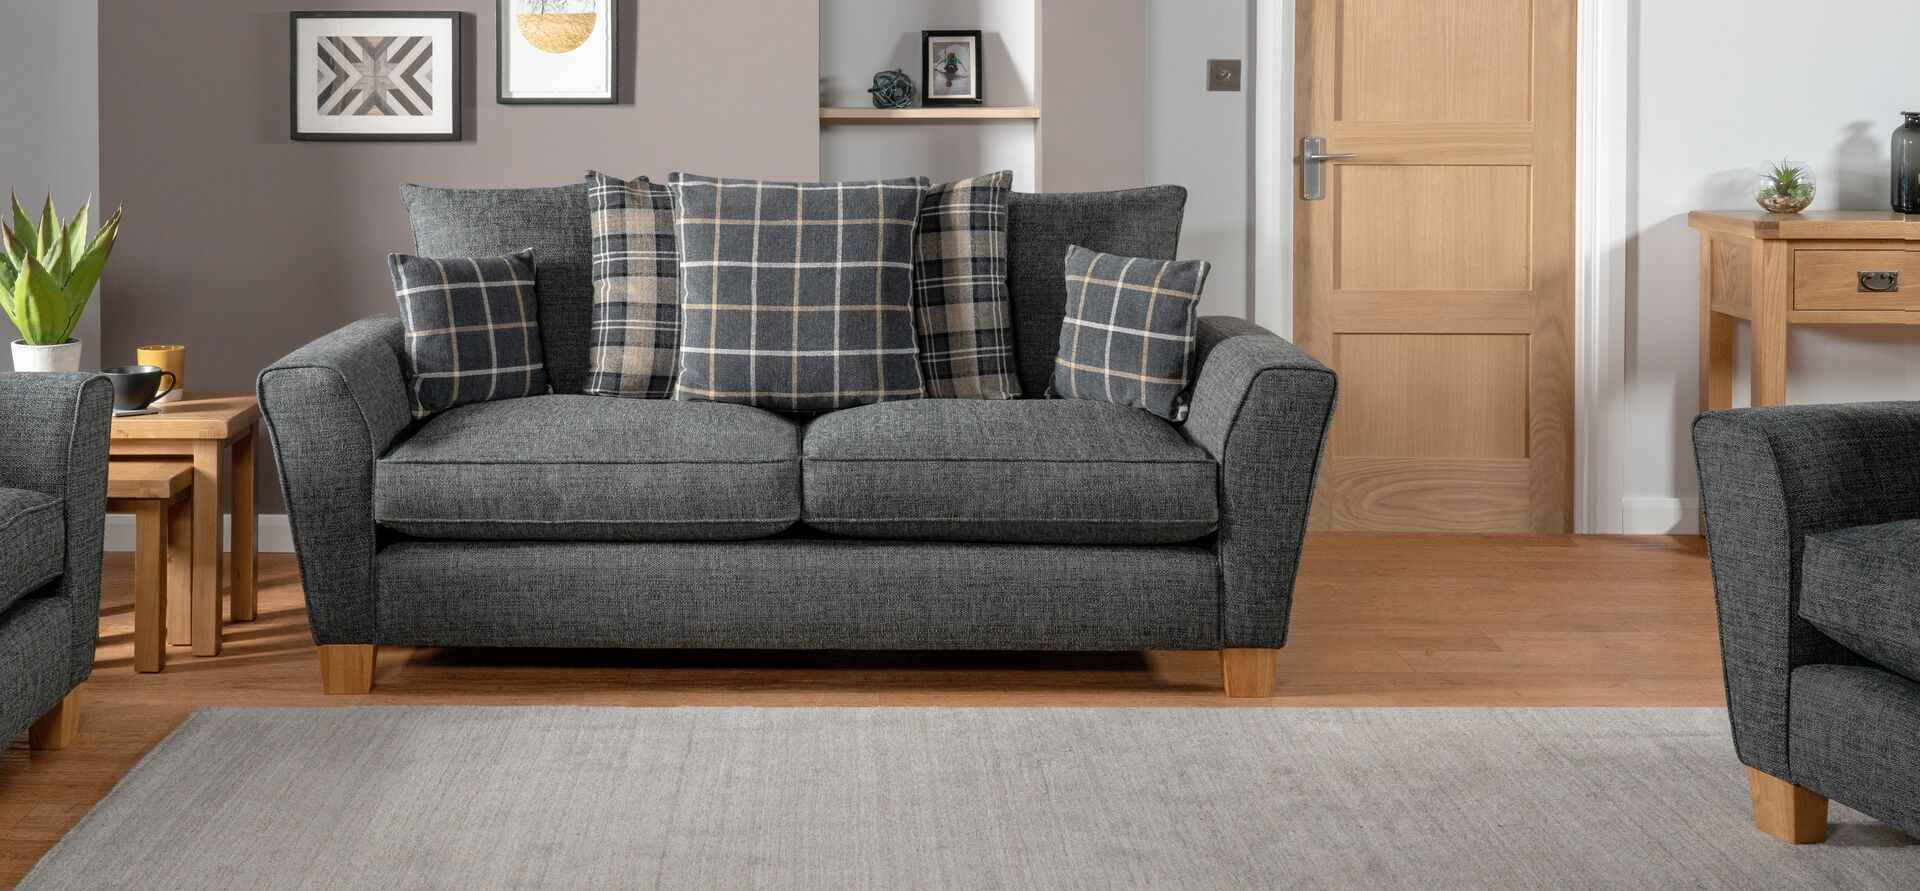 Harry 3 Seater Sofa Scatter Back With Images Seater Sofa Sofa Shop 3 Seater Sofa